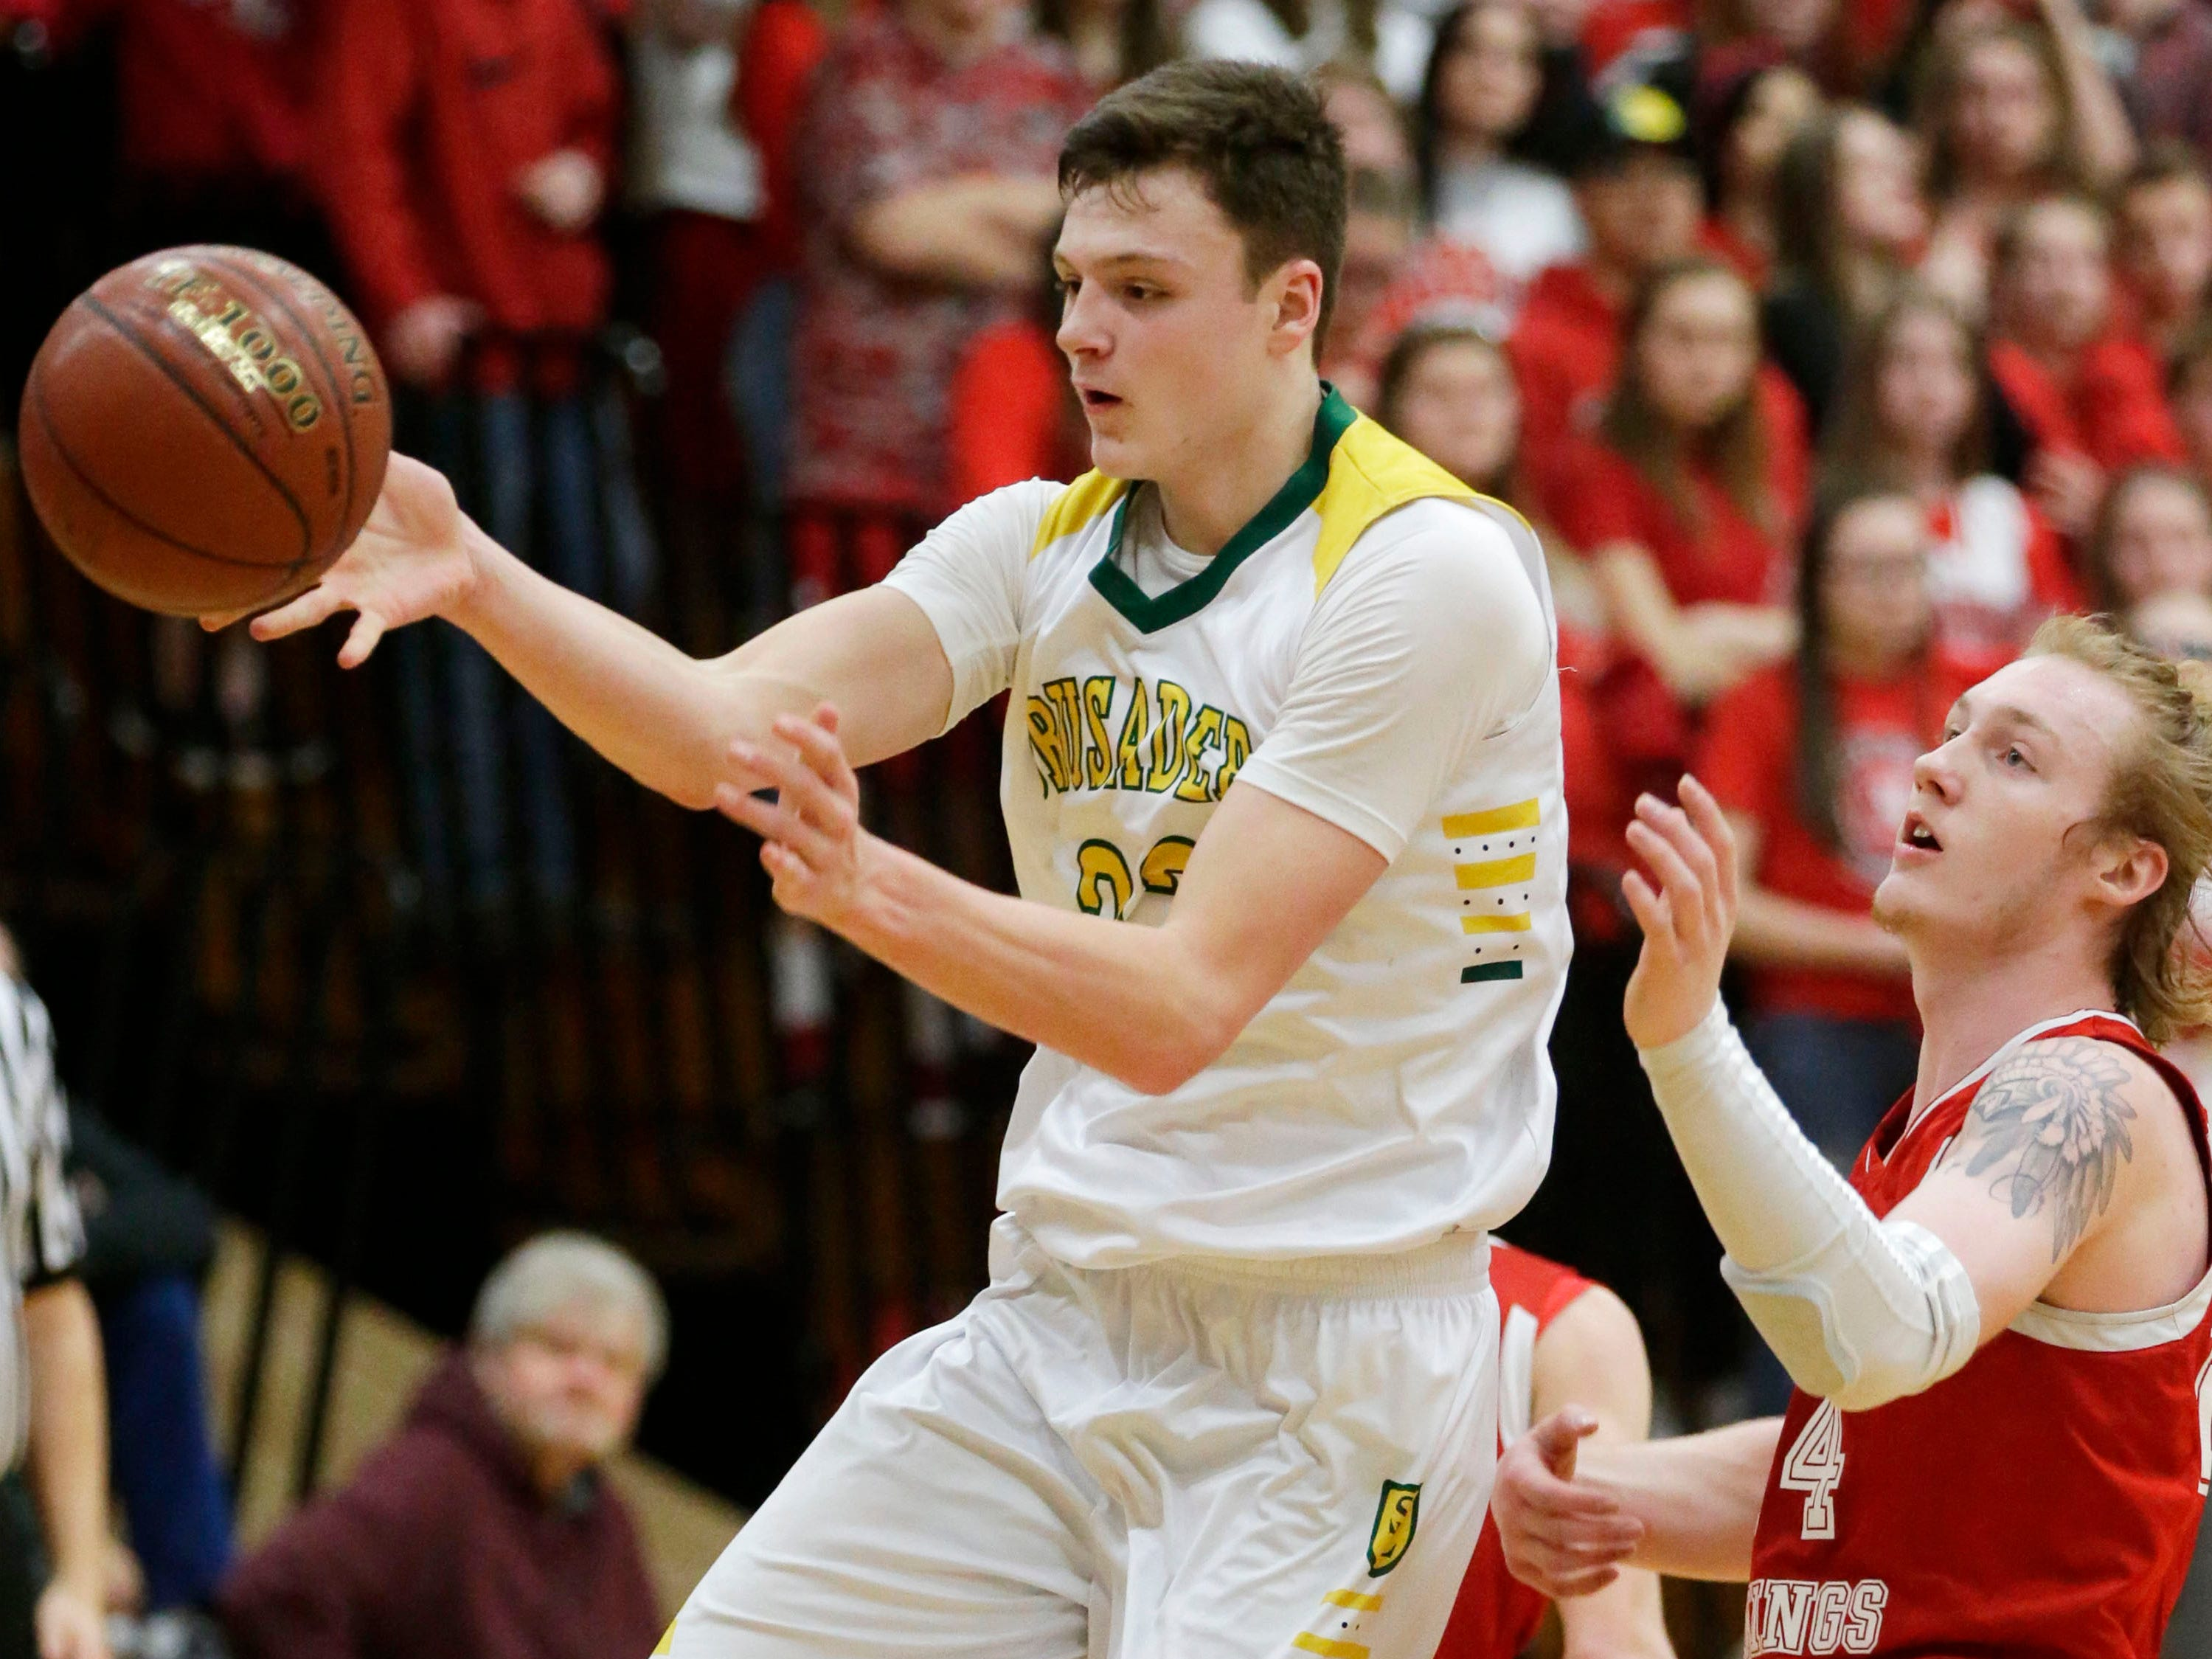 Sheboygan Lutheran's Jacob Ognacevic (23, left) passes the ball by Rio's Nathan Rippl (24), Saturday, March 9, 2019, in West Bend, Wis.